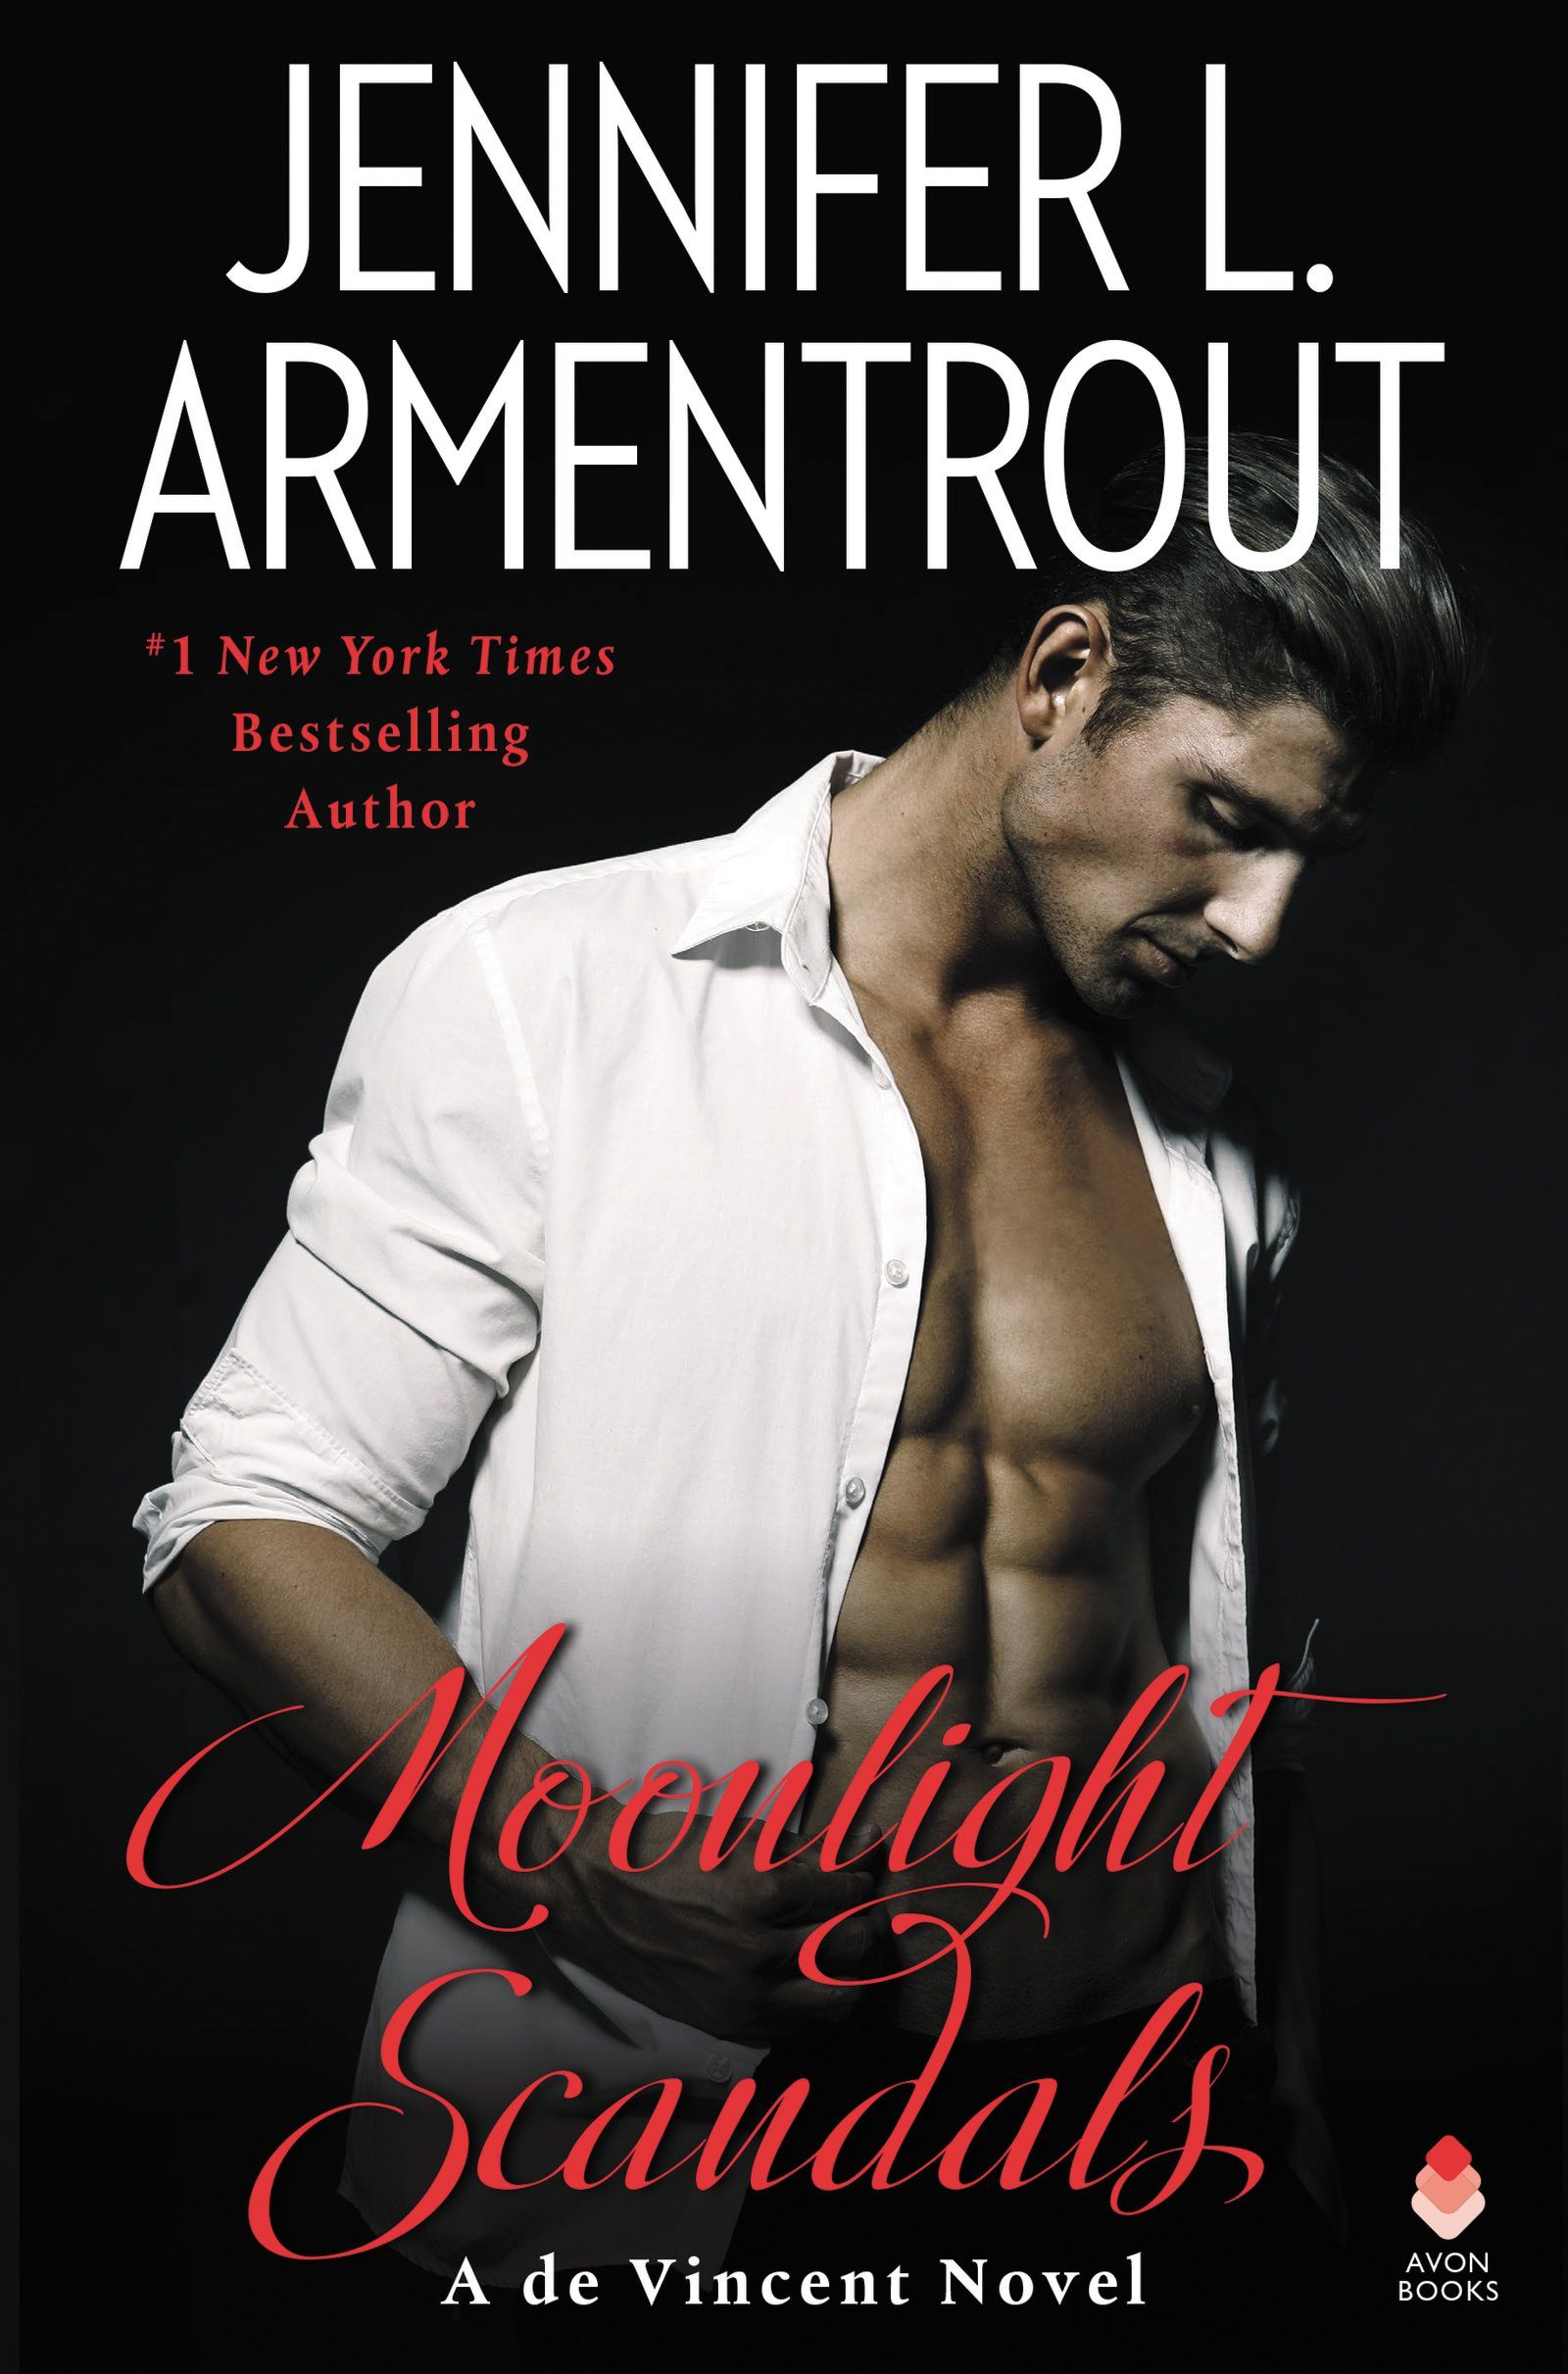 Moonlight Scandals De Vincent 3 By Jennifer L Armentrout Out Jan 29 2019 Click To Preorder Romantic Suspense Angel Books Novels